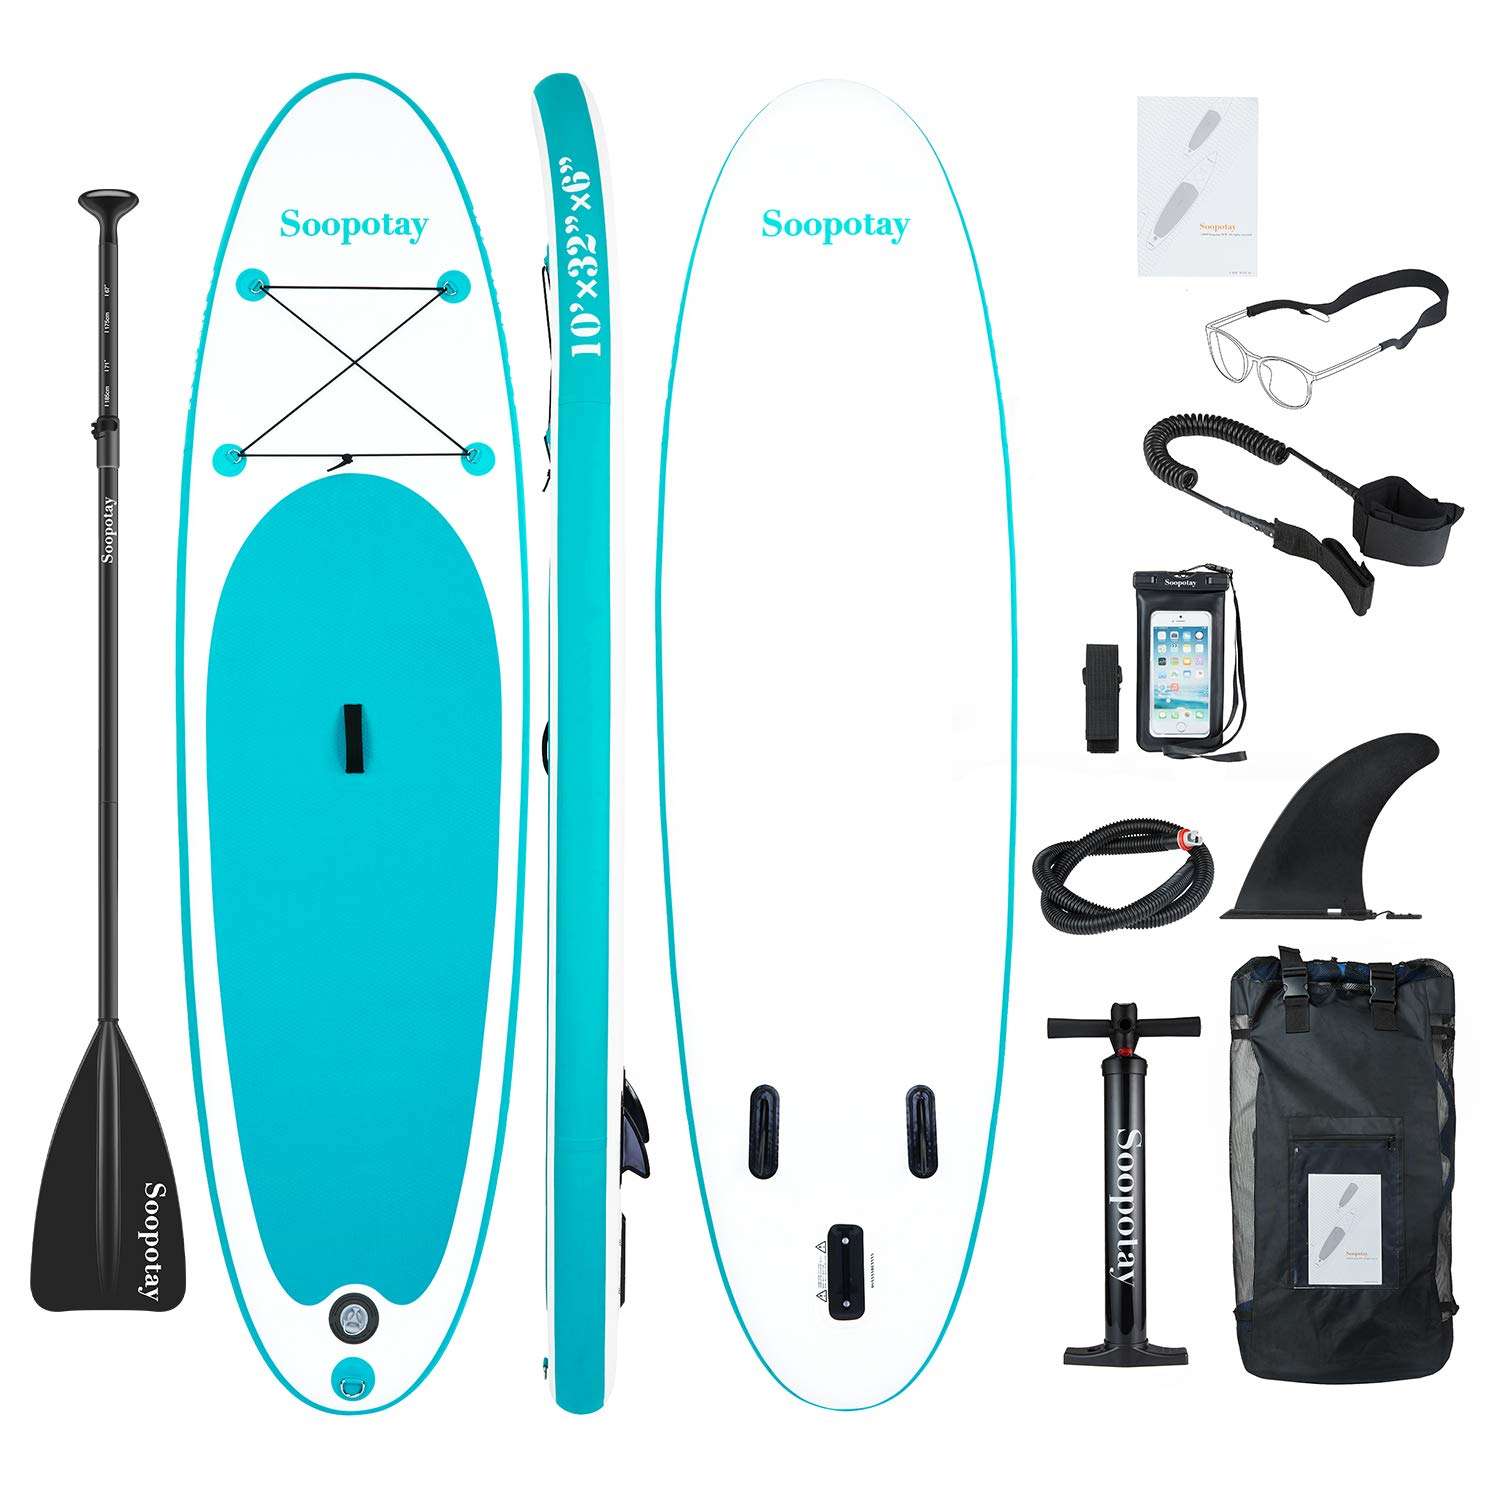 Inflatable SUP Stand Up Paddle Board, Inflatable SUP Board, iSUP Package with All Accessories (All round primary-Turquoise Green-10' x 32'' x 6'')